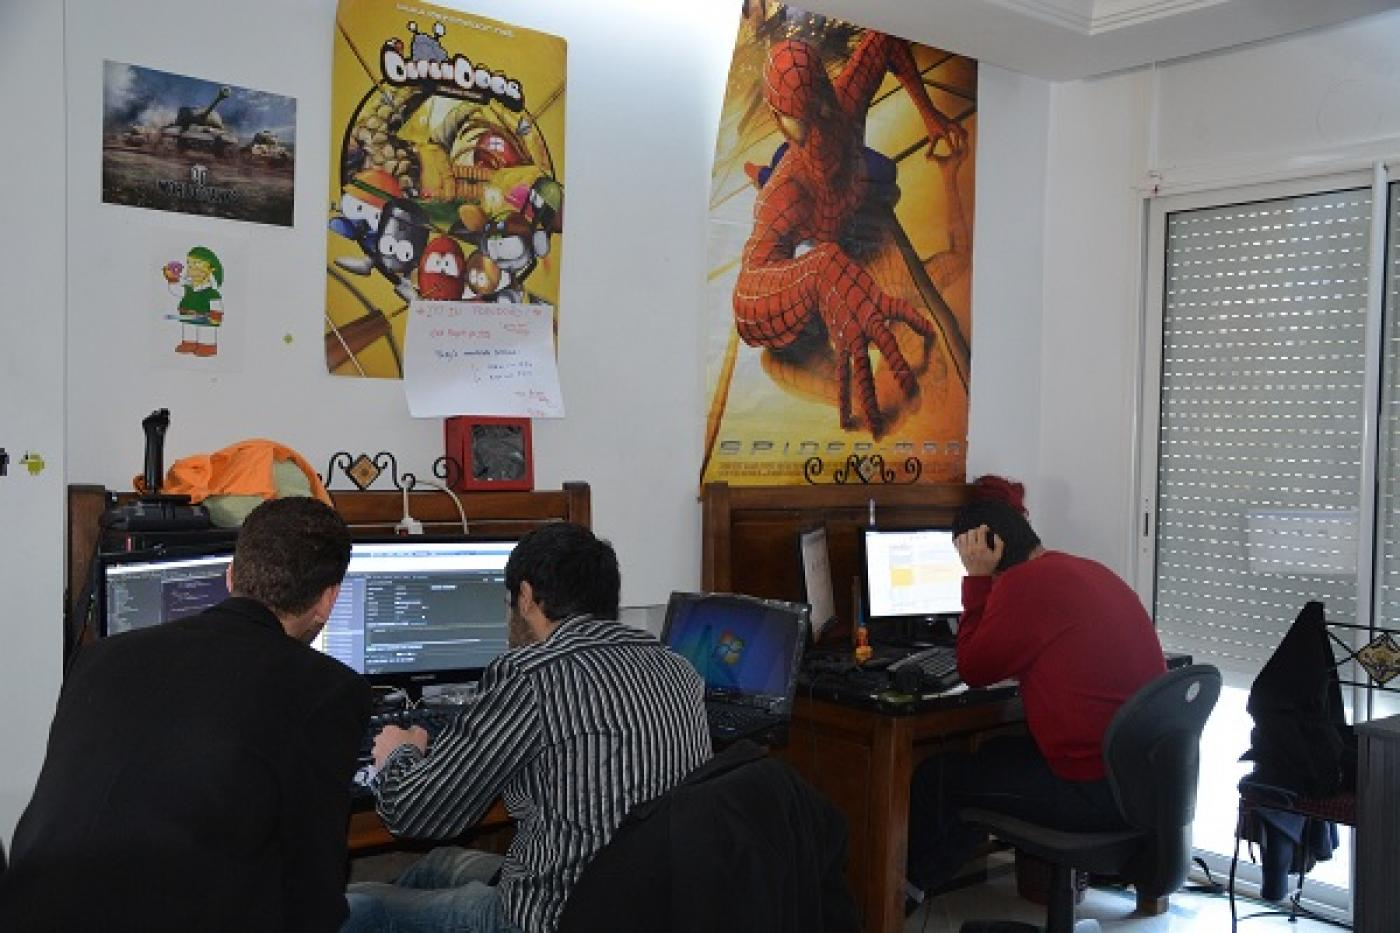 Game developer determined to put Tunisia on the map | Middle ... on internet map, technology map, photoshop map, us time map, wii map, contact us map,